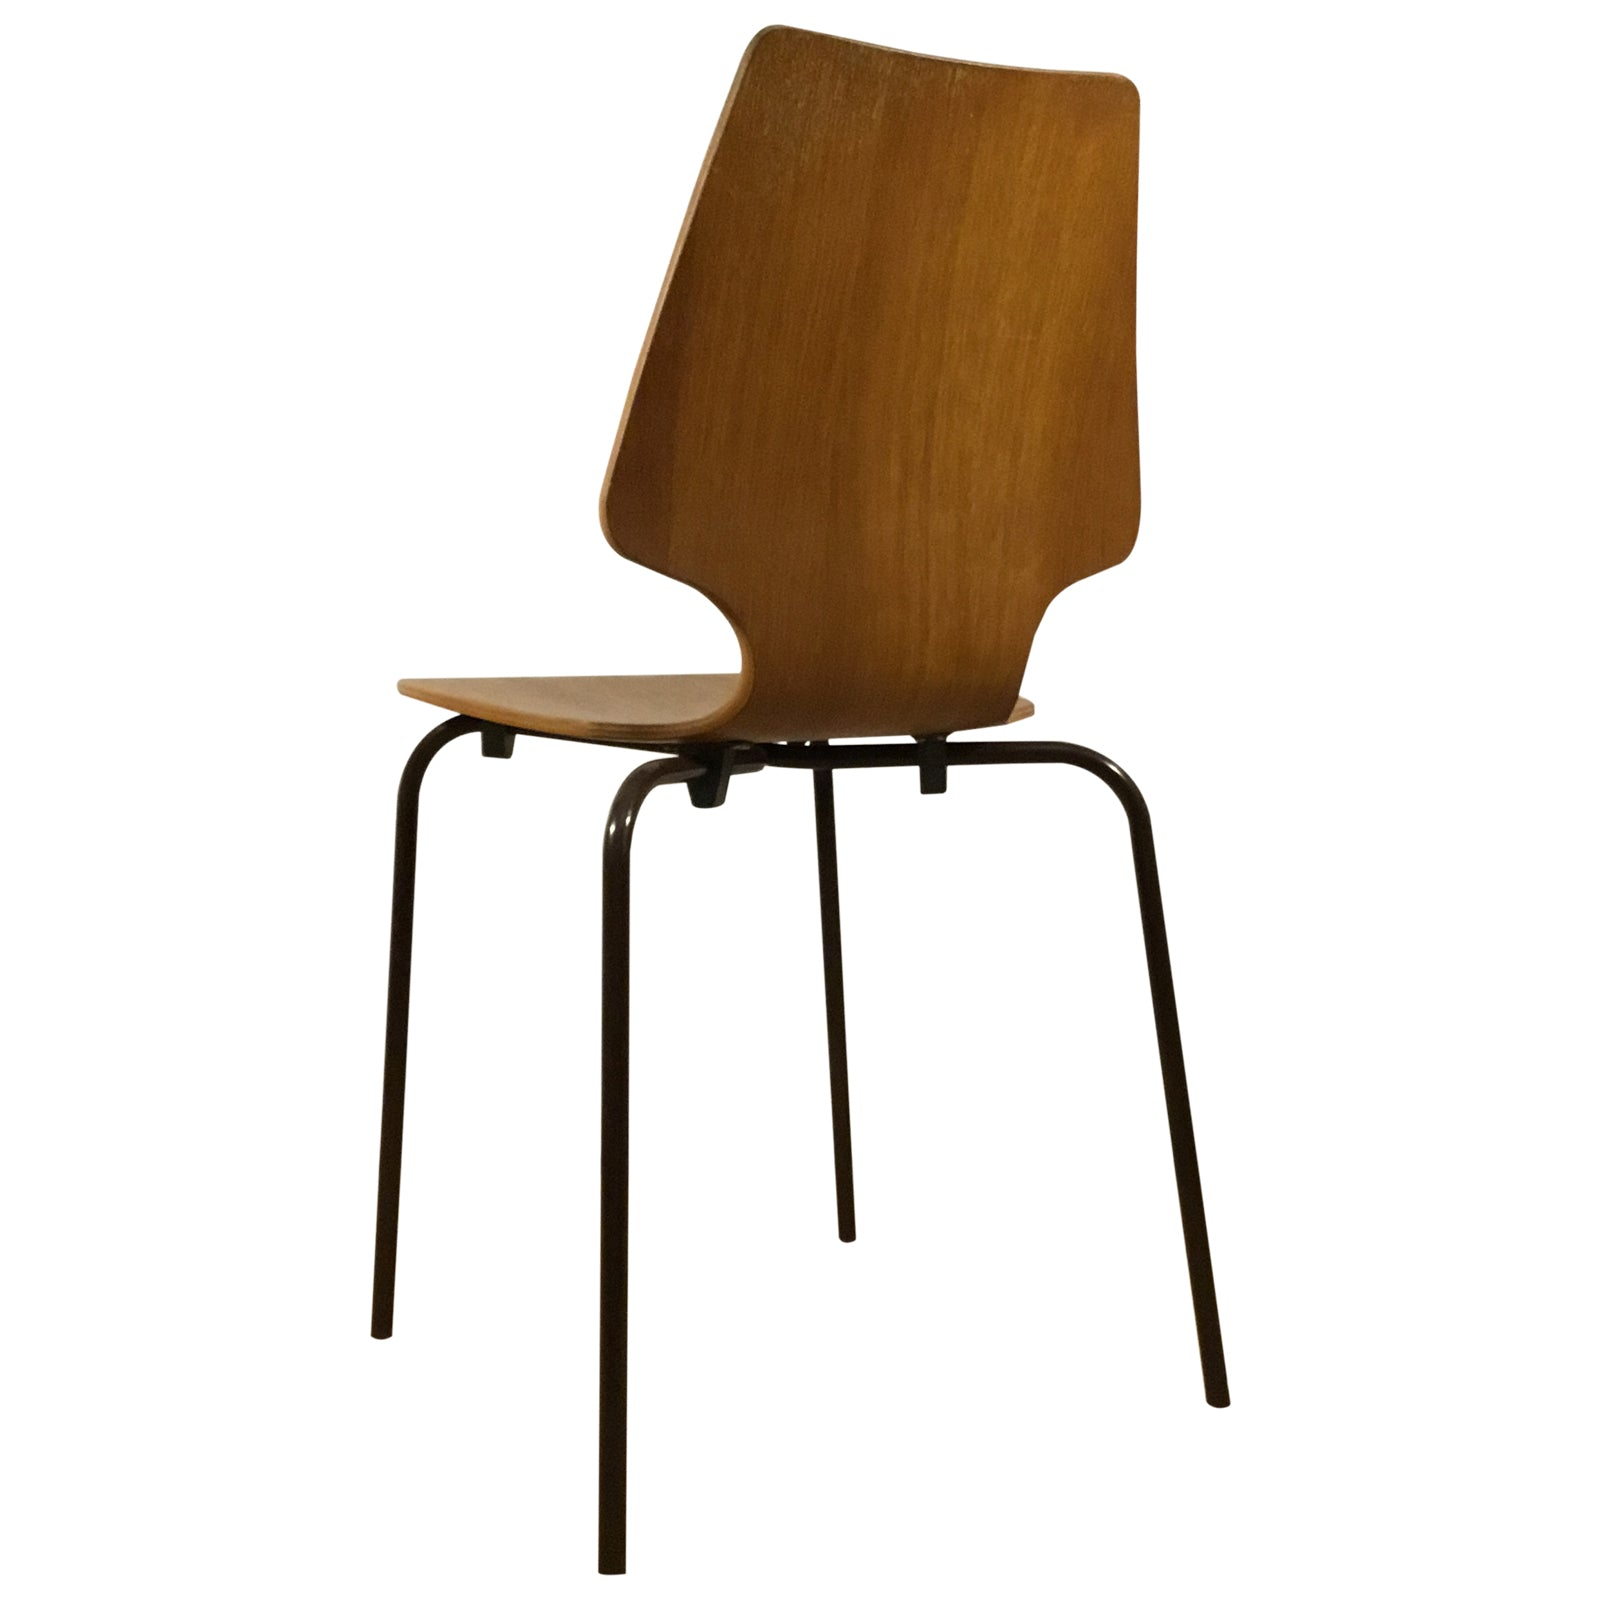 Vintage Danish bent plywood stacking chair, Mid Century. 1970/80s